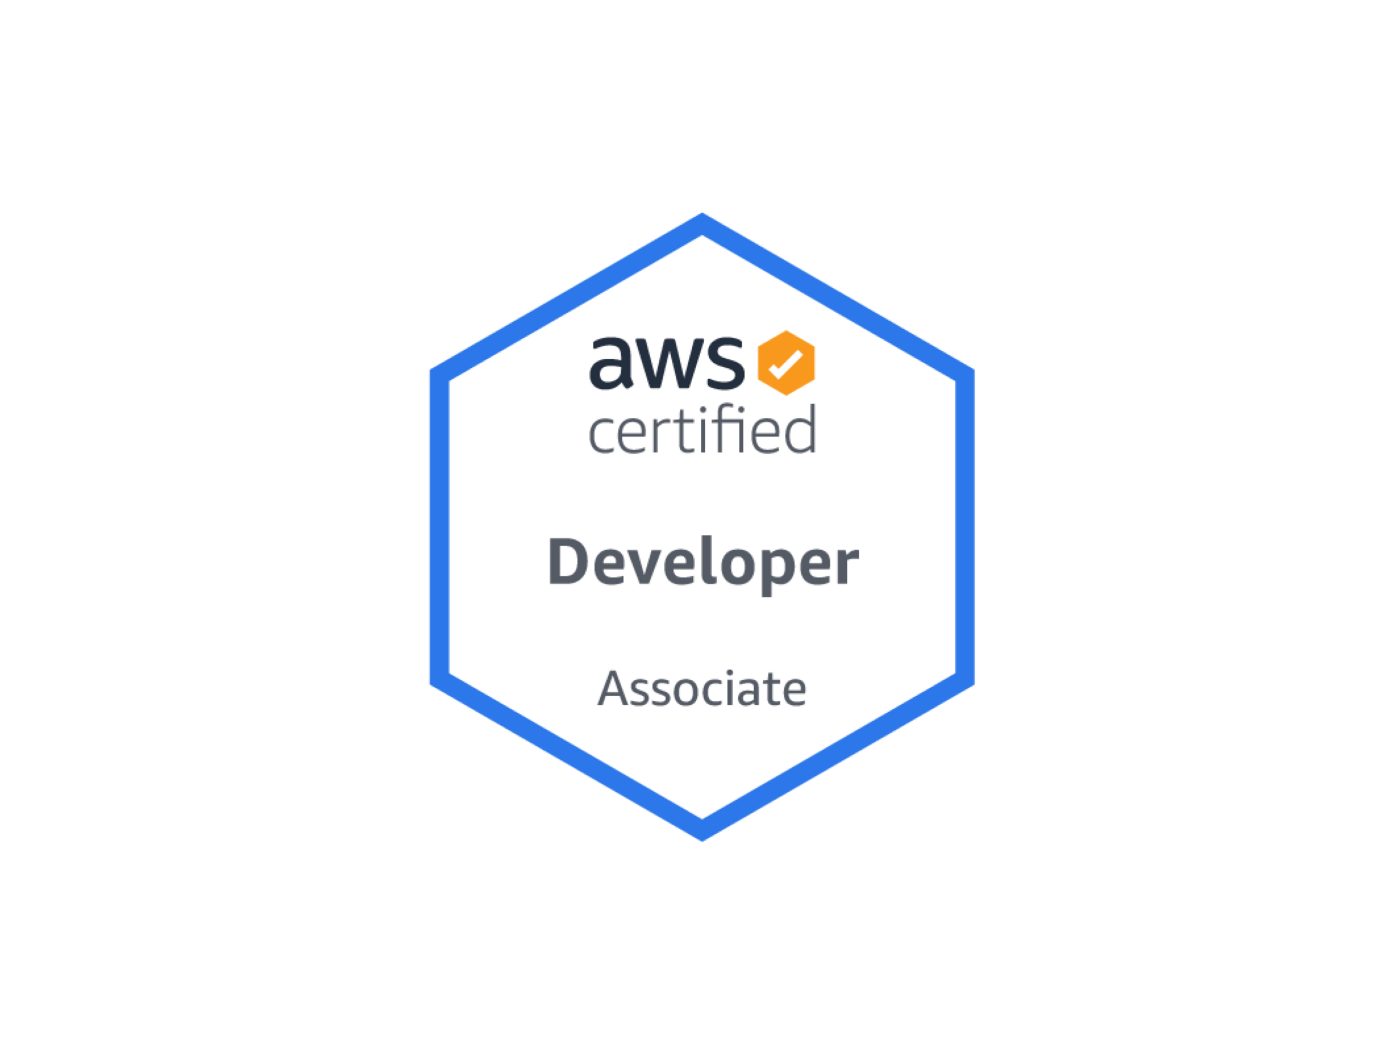 Certified Developer Associate DVA-C01 badge by Amazon Web Services